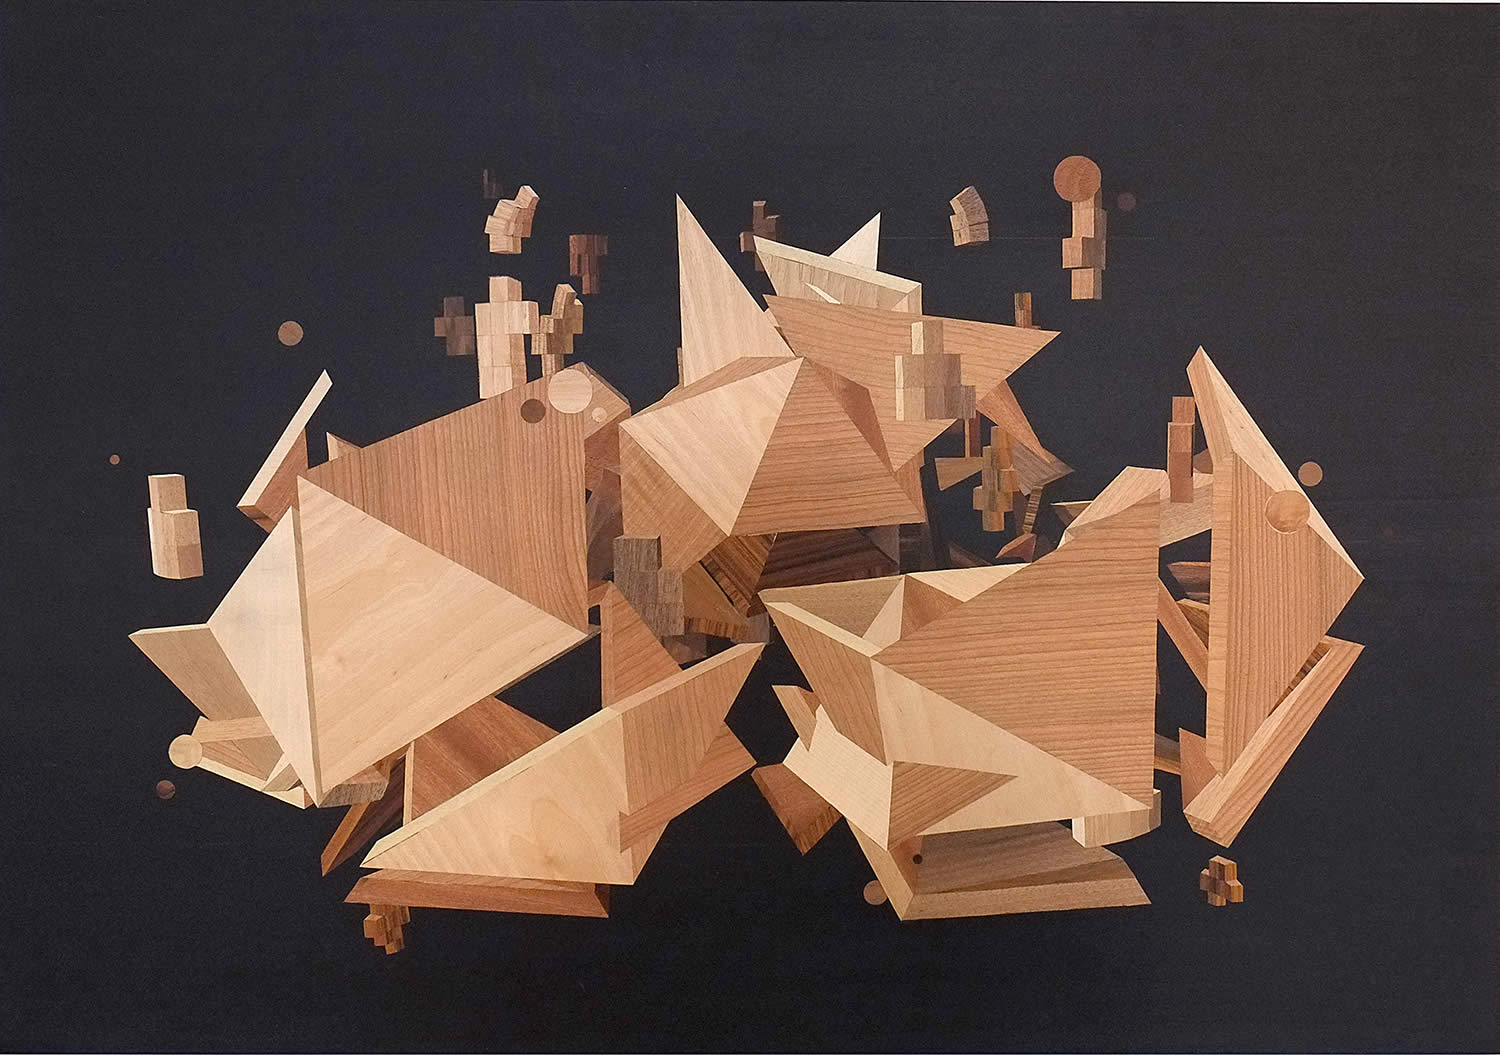 3d geometic shapes in wood. quid by rocco pezzella